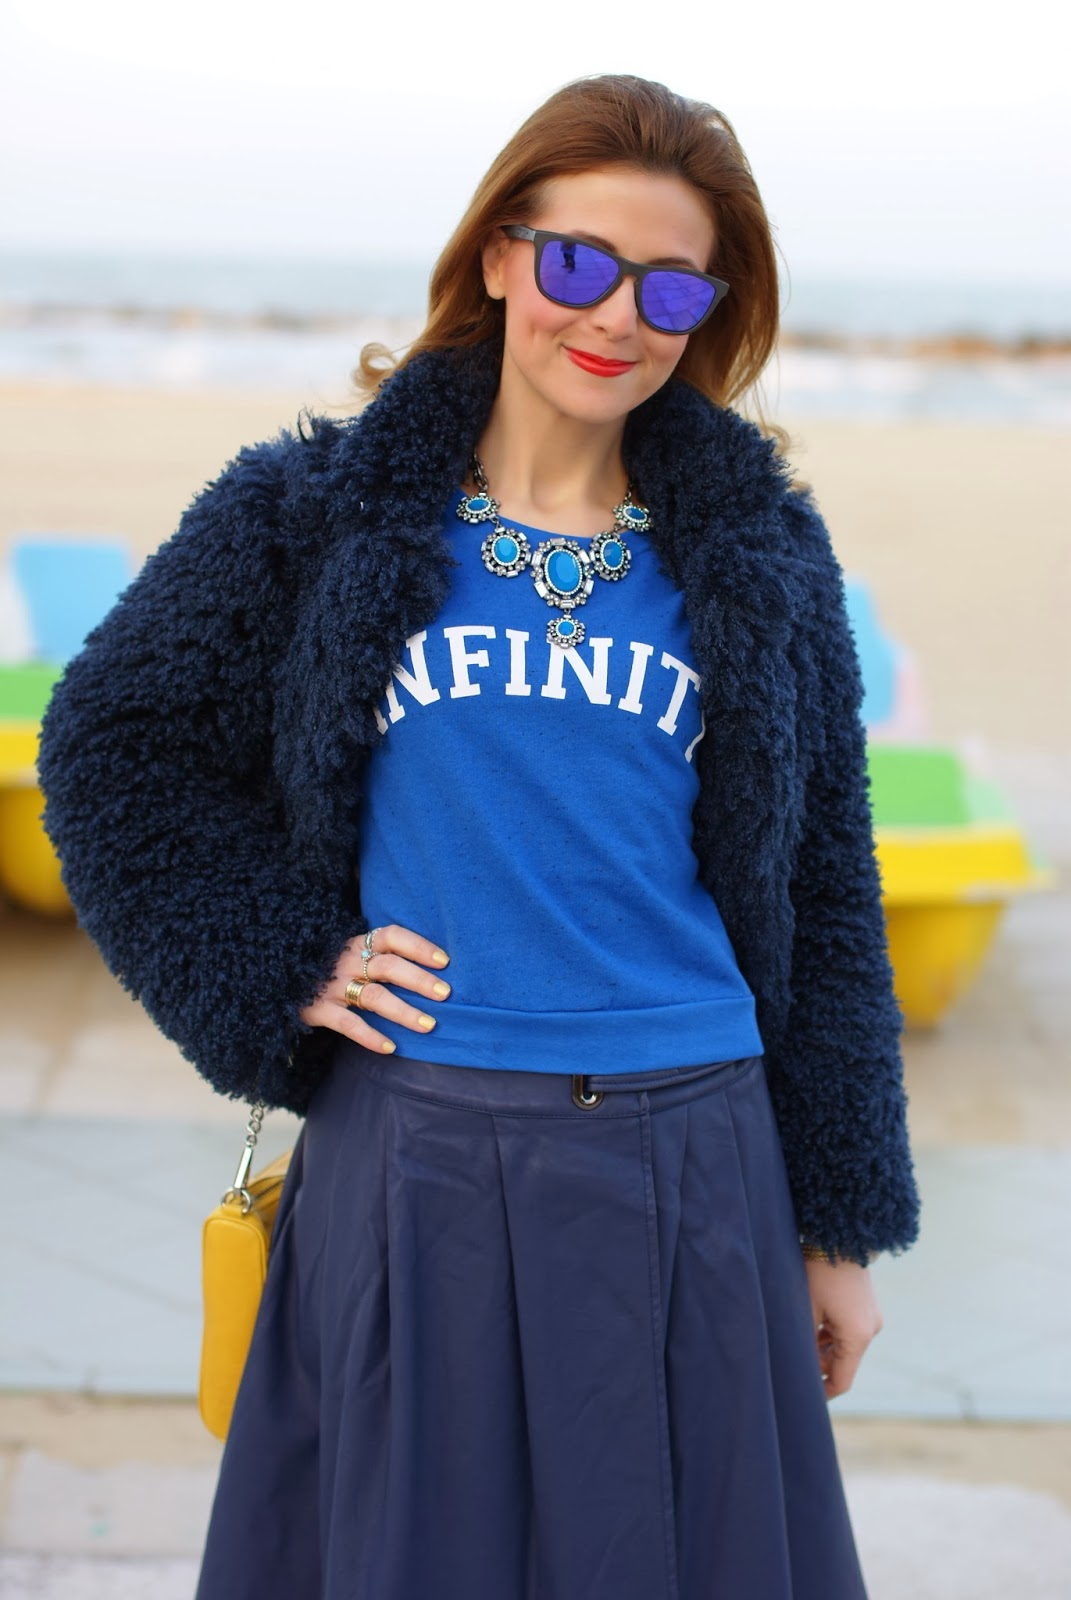 So Allure faux fur jacket, Zara statement necklace, Infinity sweatshirt, Fashion and Cookies, fashion blogger